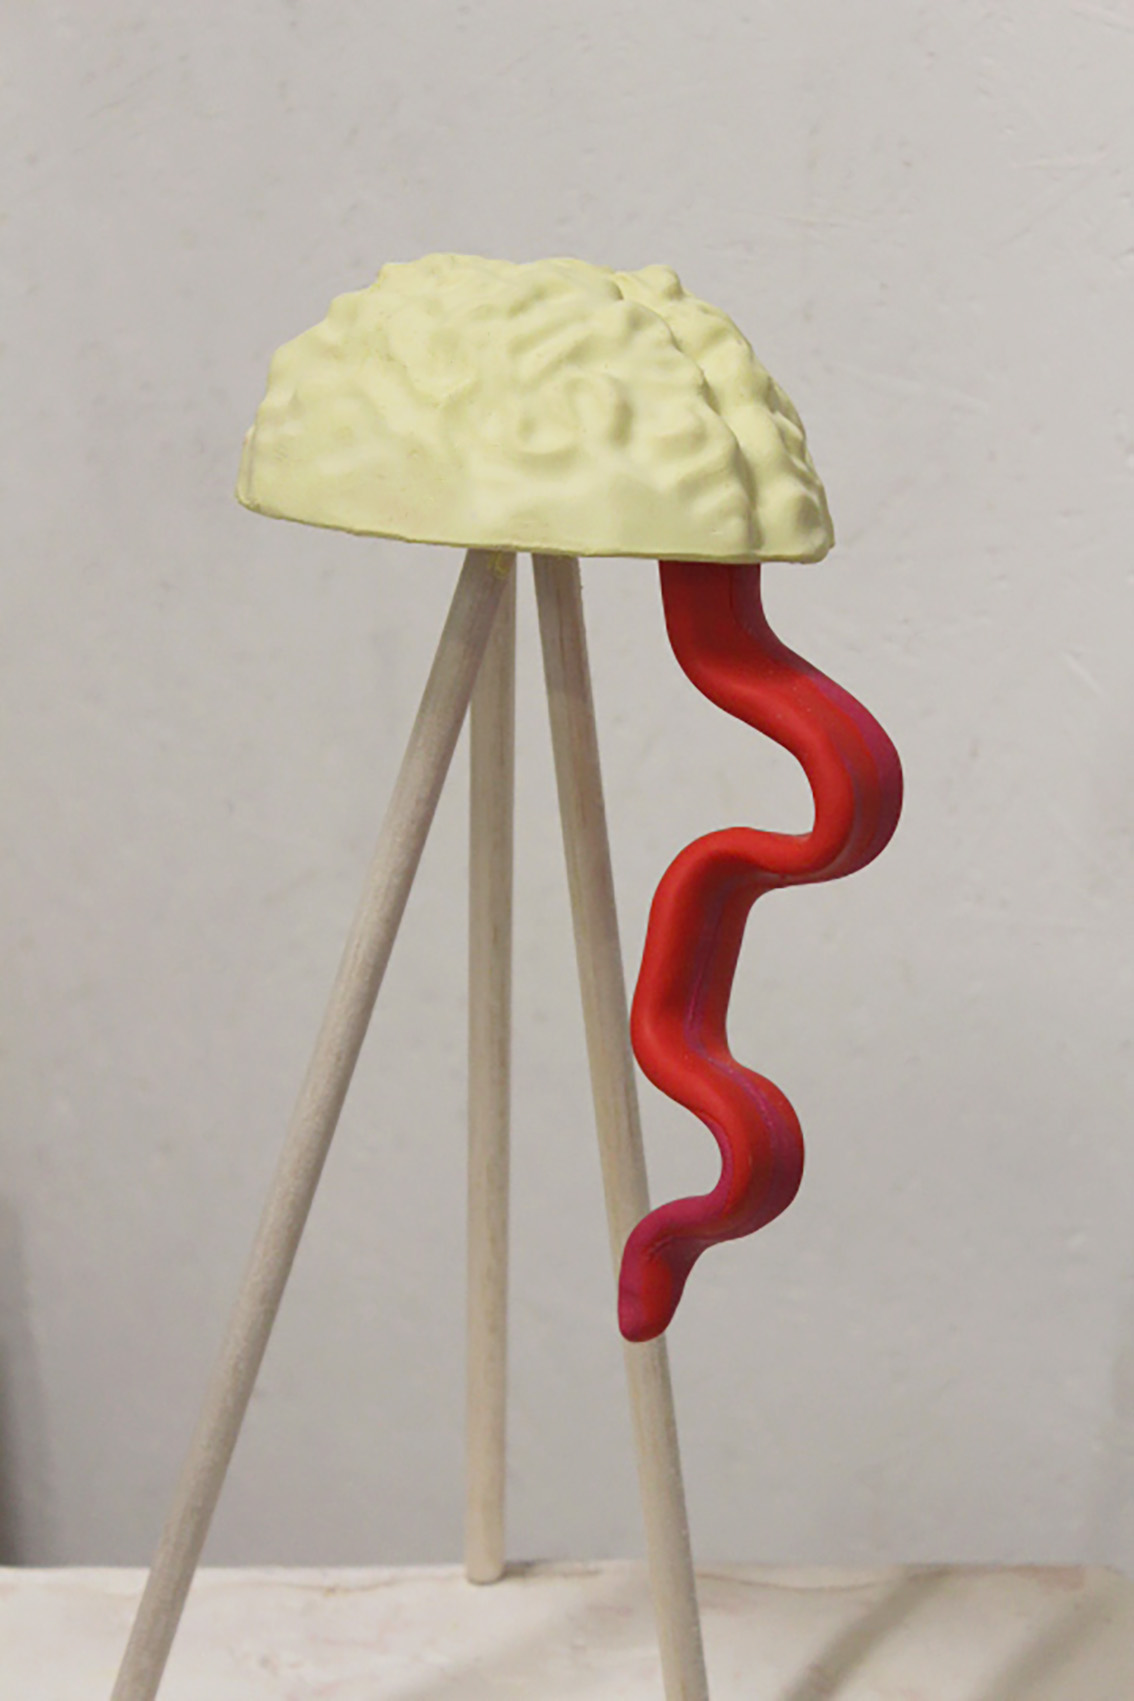 Brain Tongue | Pippa Eason | 2019 | plaster, wood, fimo | 20cm x 40cm | image: courtesy of the artist